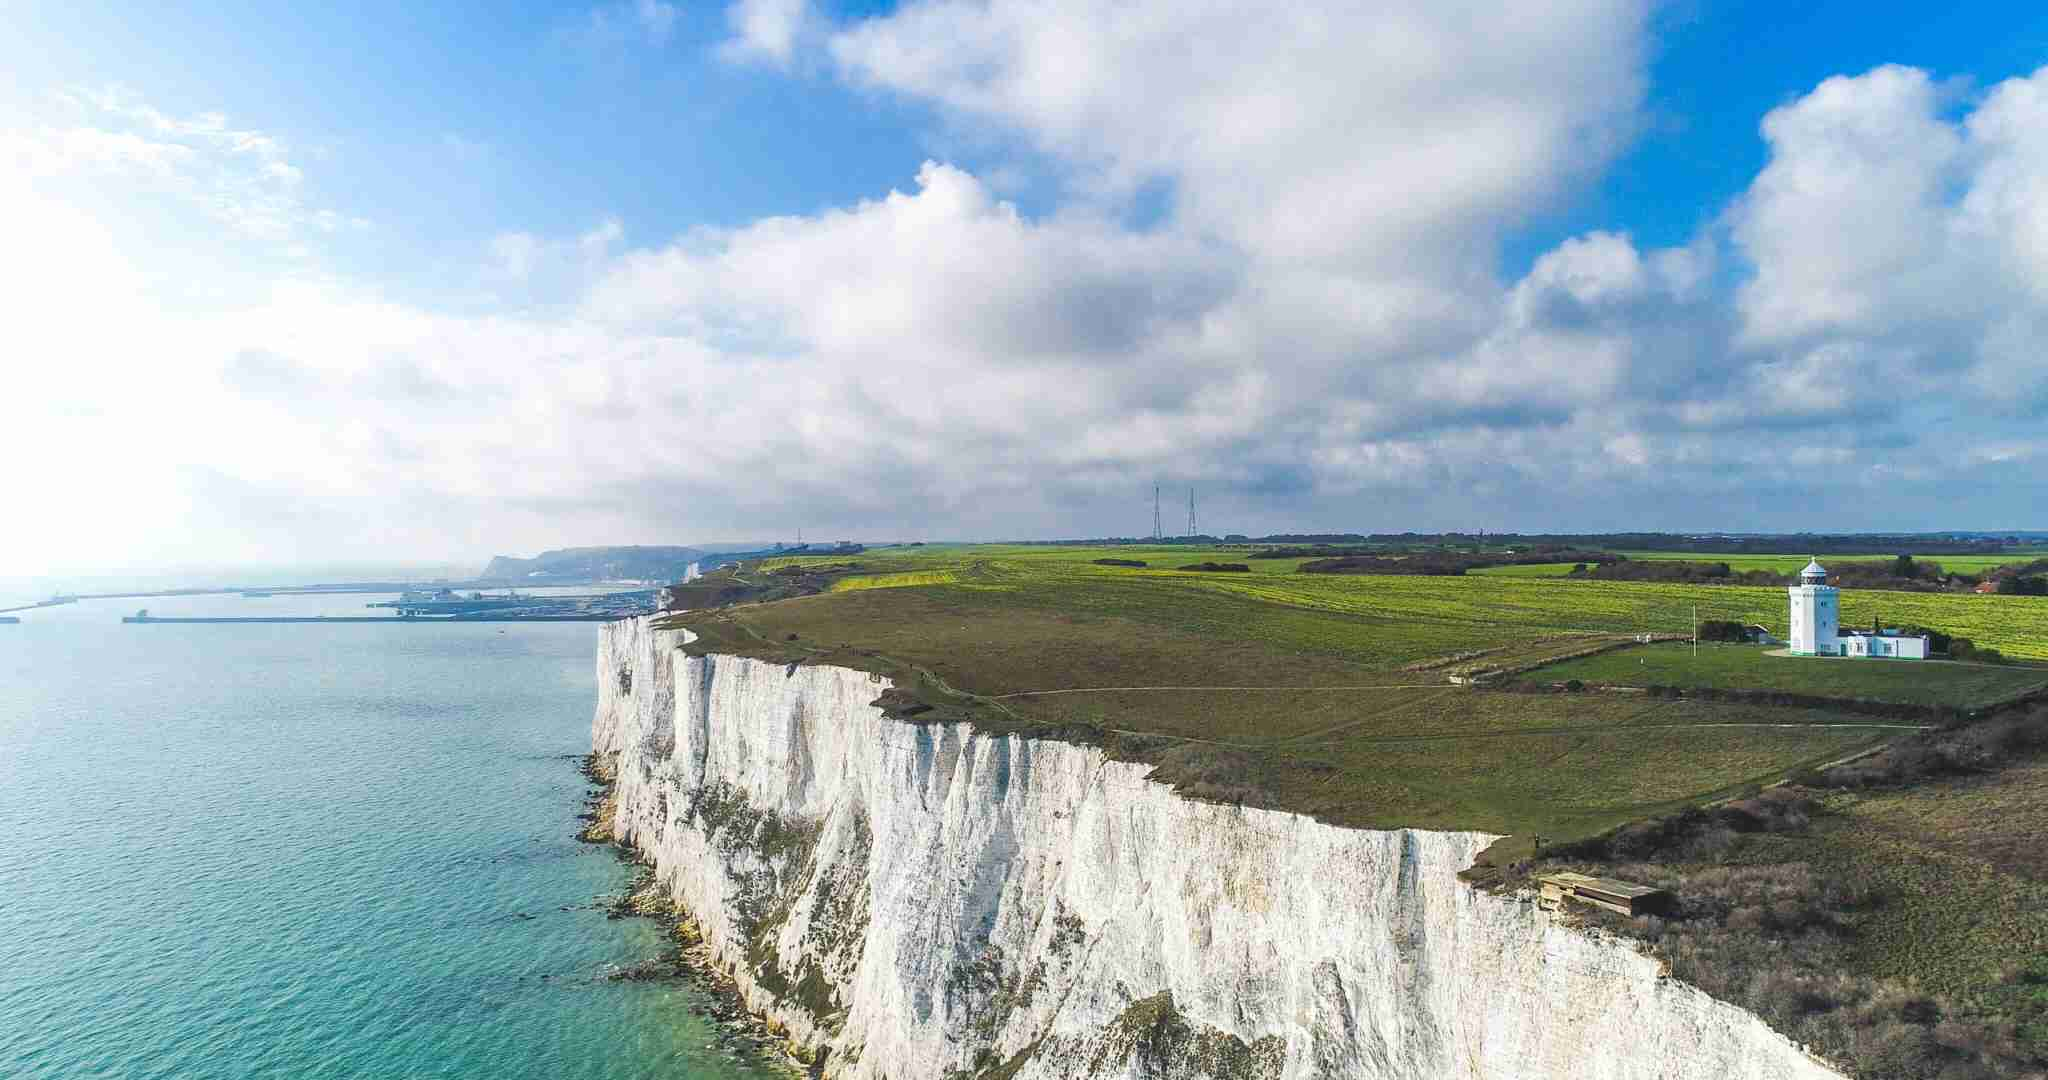 Aerial shot of the White Cliffs of Dover. (Photo by clubfoto/Getty Images)